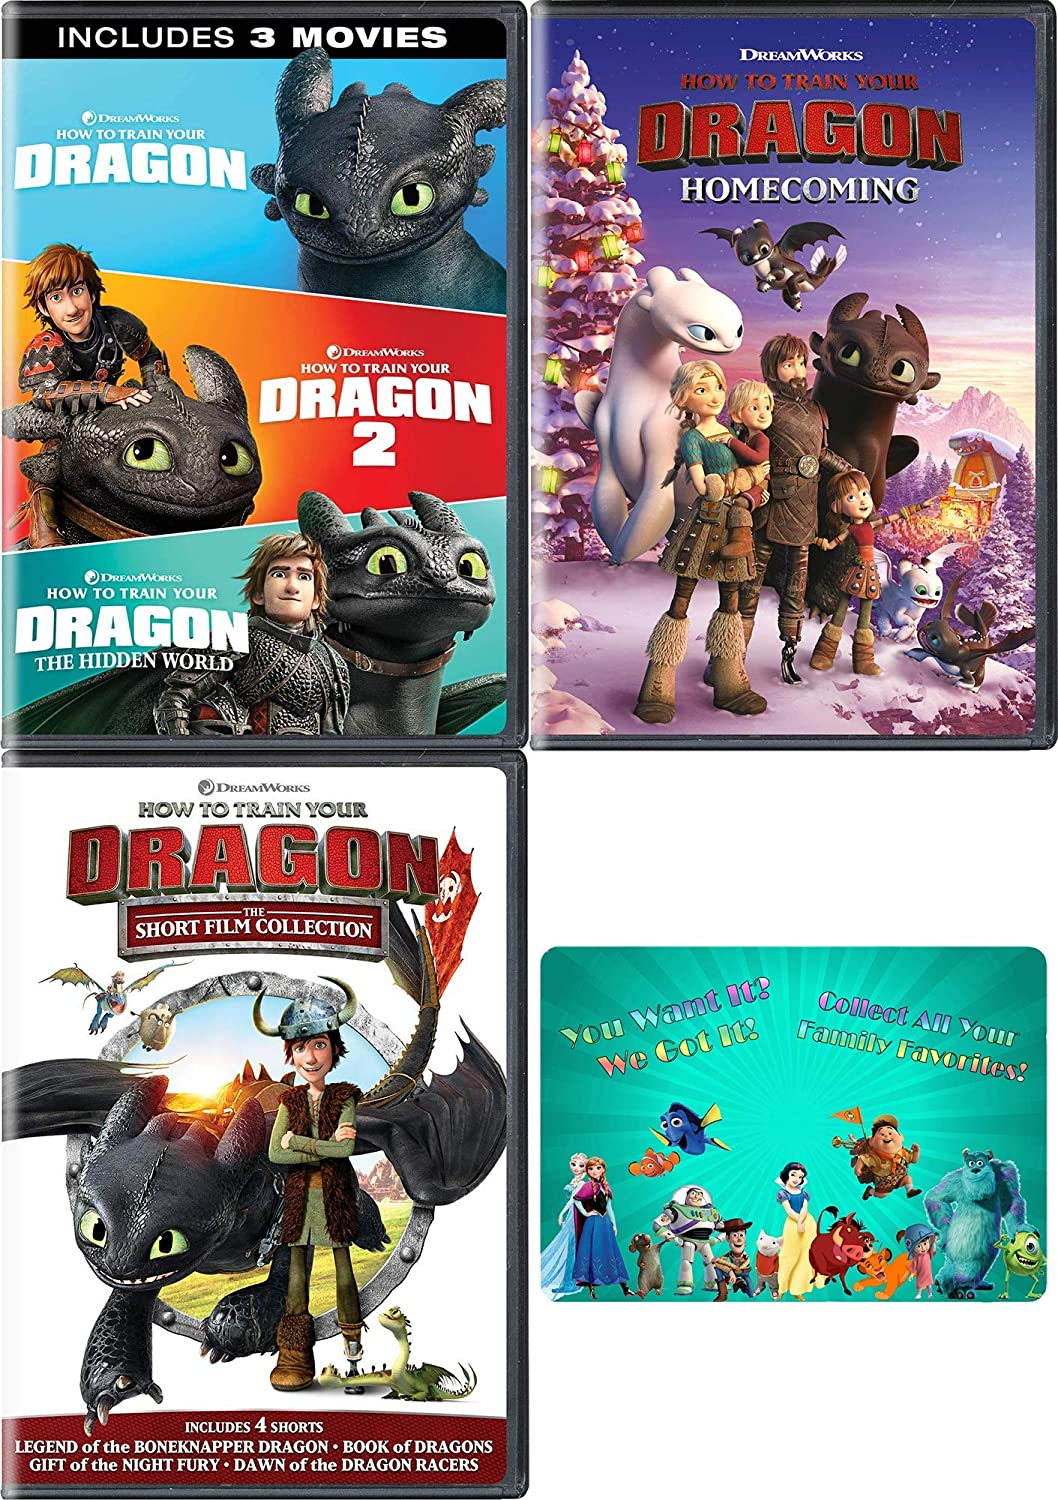 How To Train Your Dragon: Complete Movie Series and Short Film DVD Collection with Bonus Art Card